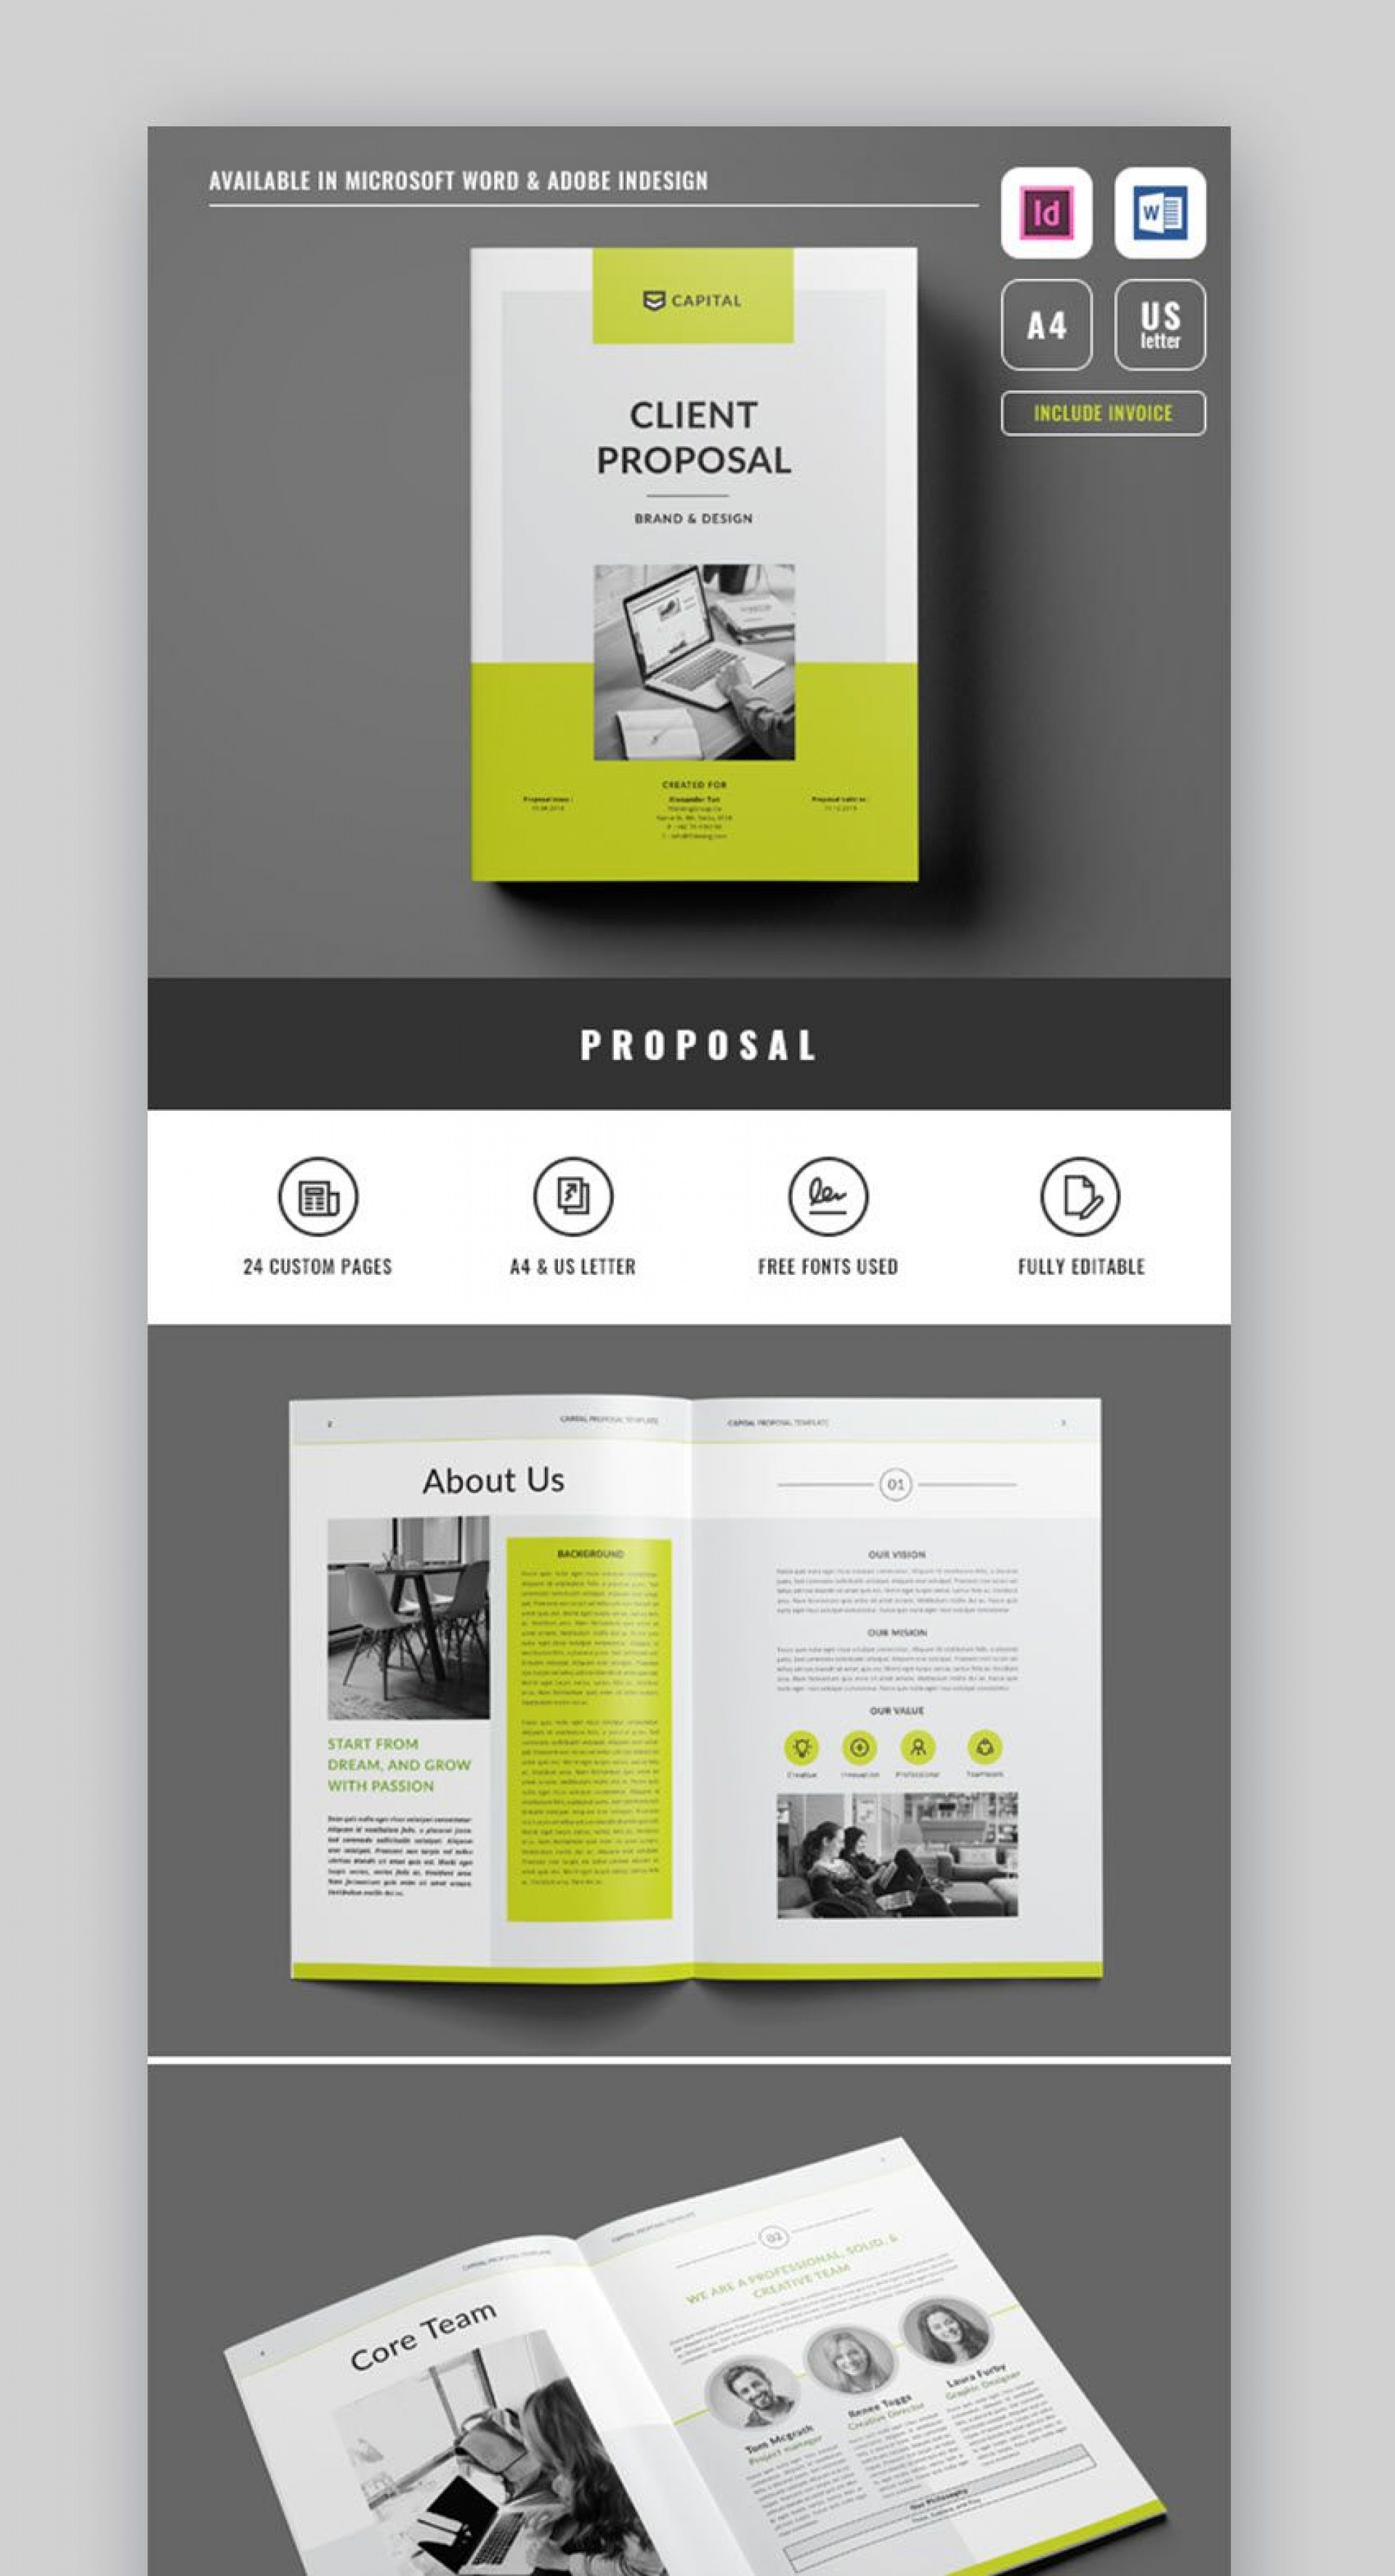 005 Singular Free Project Proposal Template High Resolution  Document Ppt Pdf1920